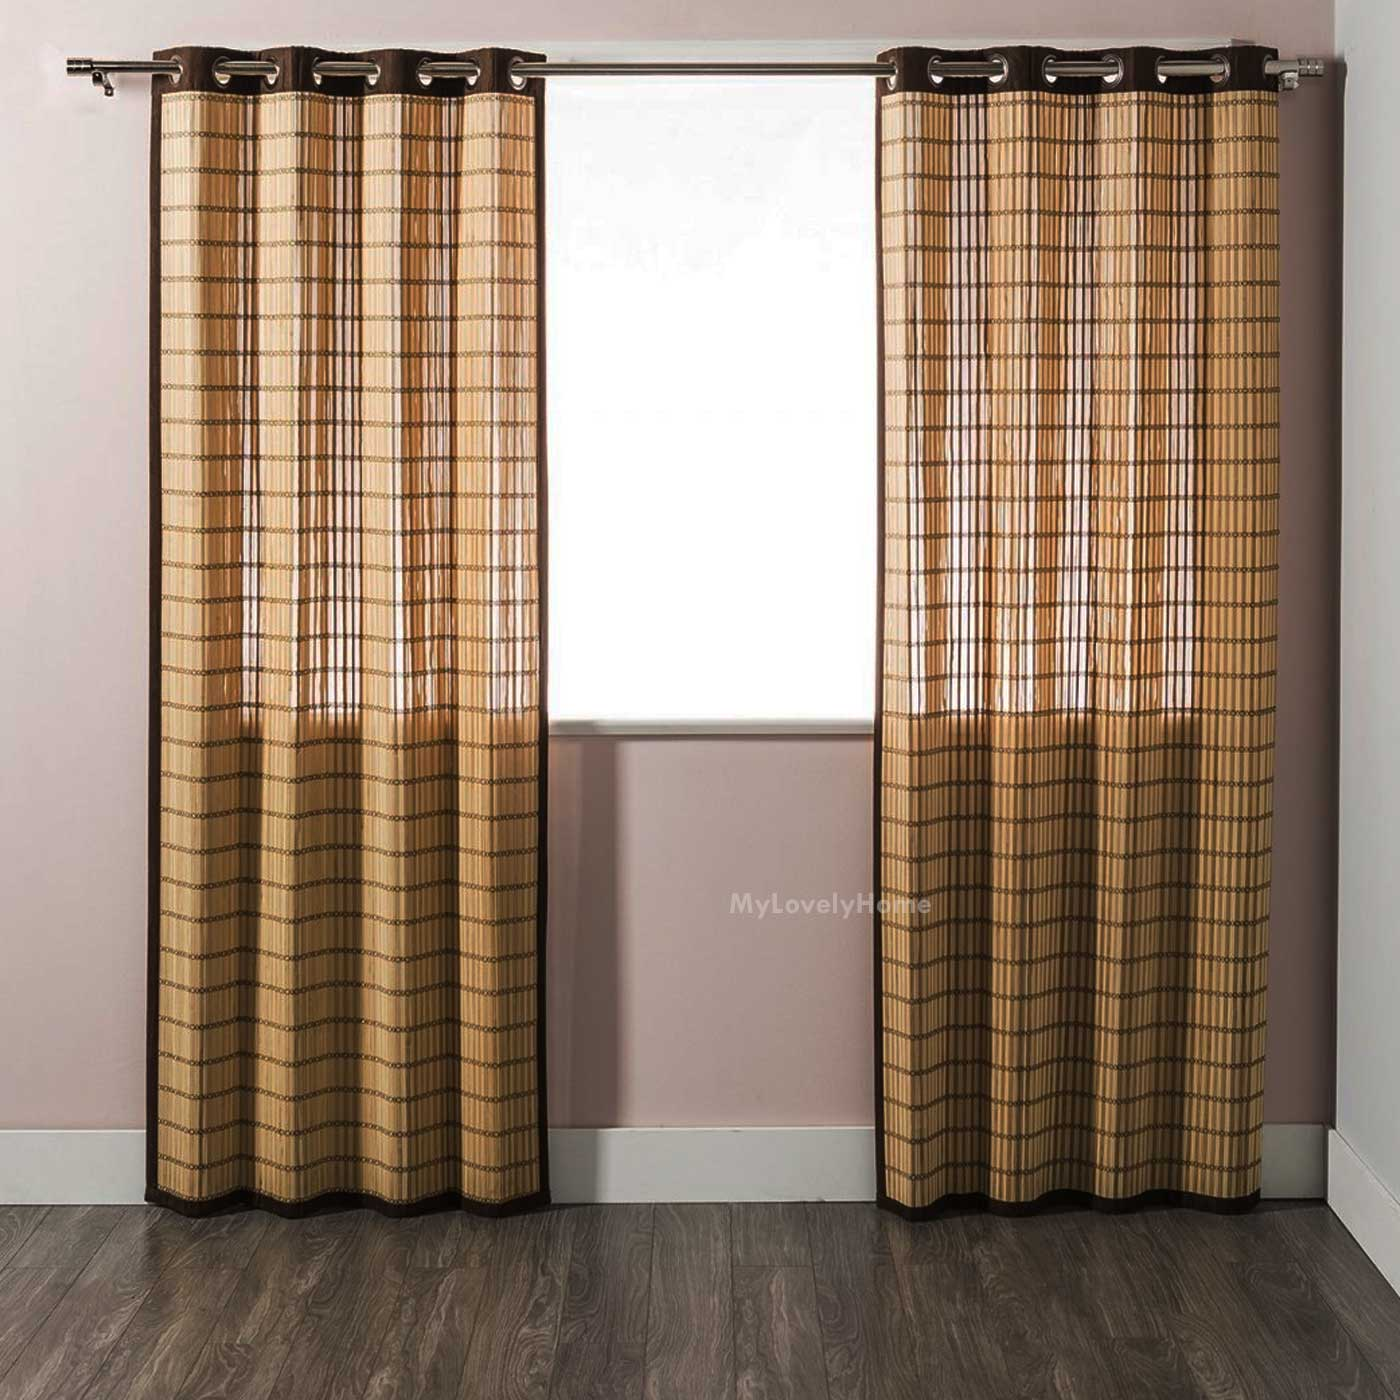 bamboo curtains blinds for balcony